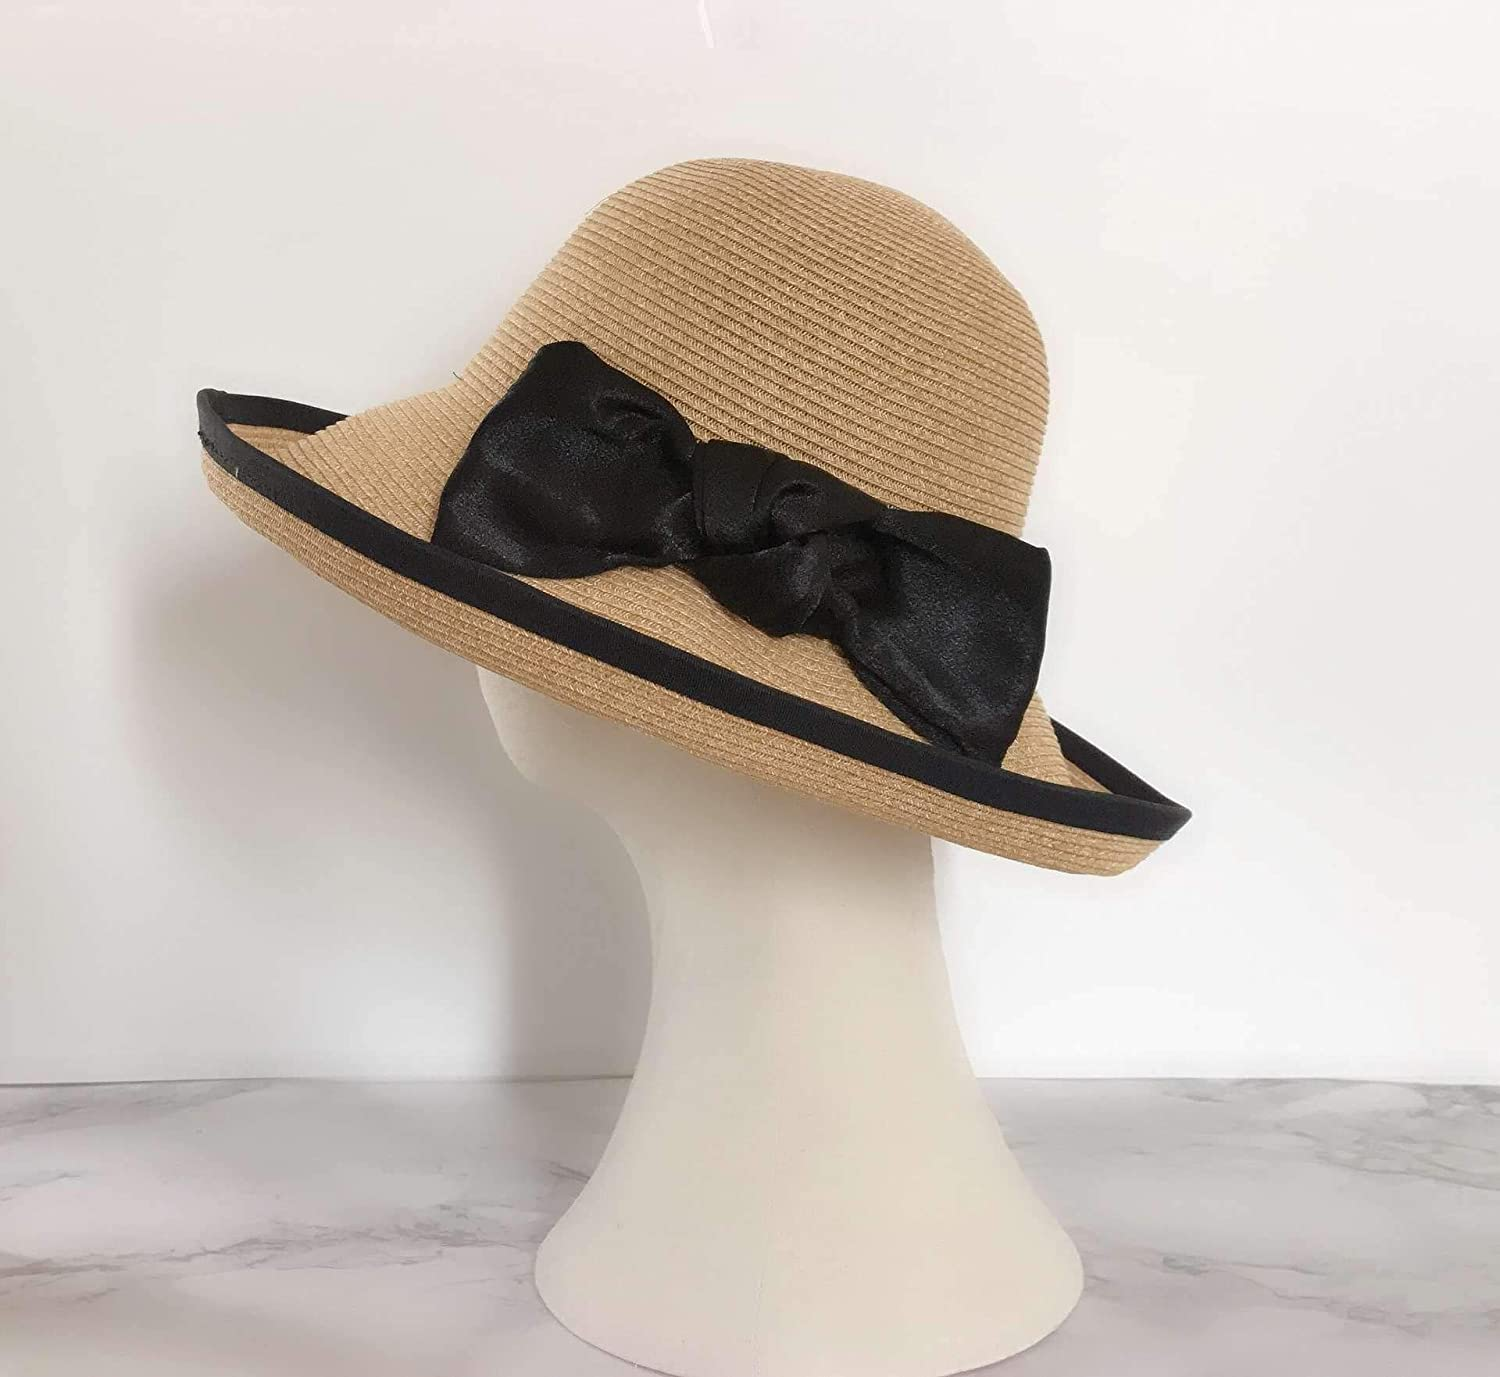 Nonebrand Visors Collapsible,Woman Spring and Summer Straw Hat Fisherman Cap Sun Protection Sunhat Sun Hat Fashion